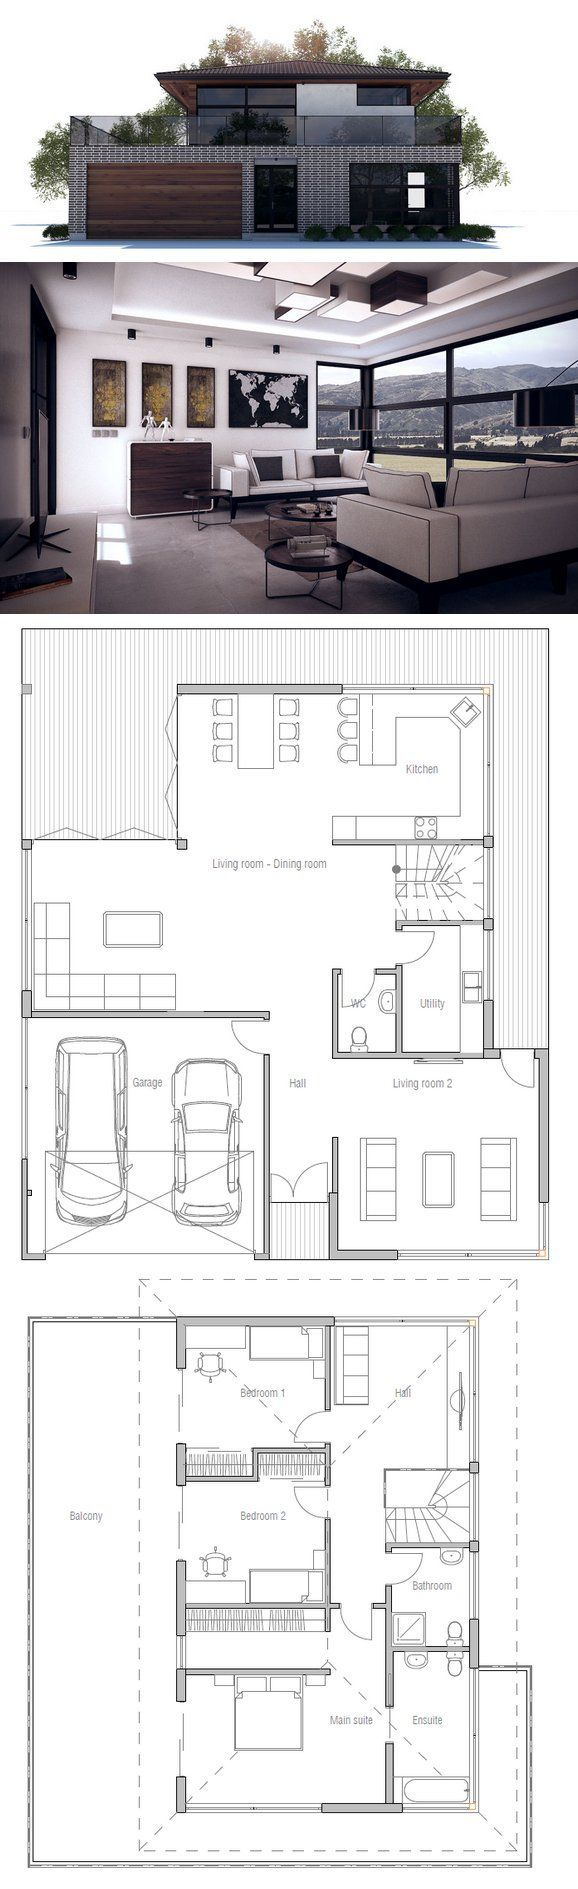 Architecture House Floor Plans 250 best shouse plans images on pinterest | architecture, house